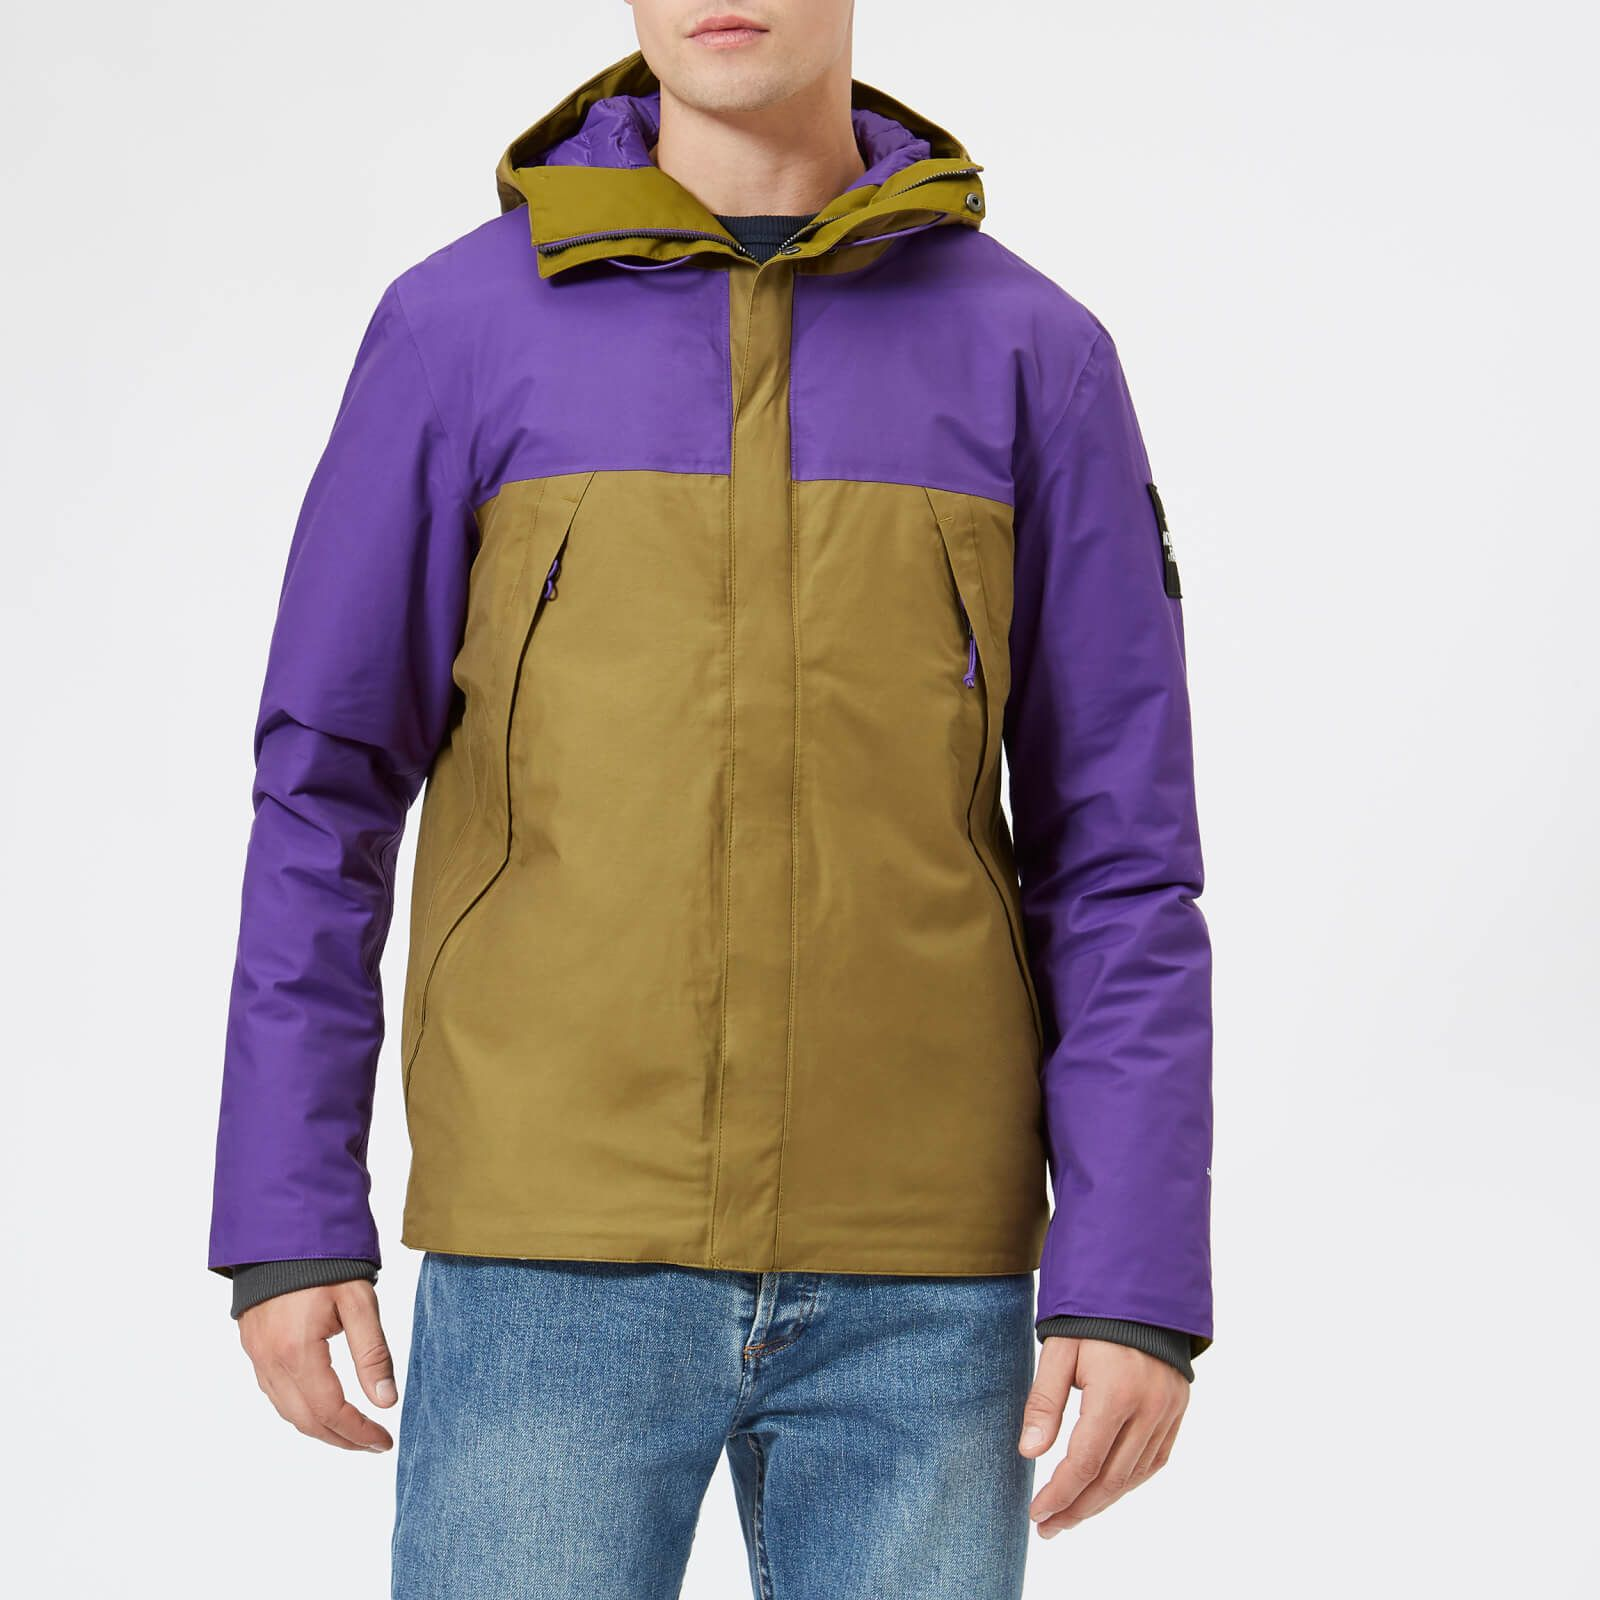 The North Face Men S 1990 Thermoball Mountain Jacket Fir Green Tillandsia Purple Mountain Jacket North Face Mens Jackets [ 1600 x 1600 Pixel ]